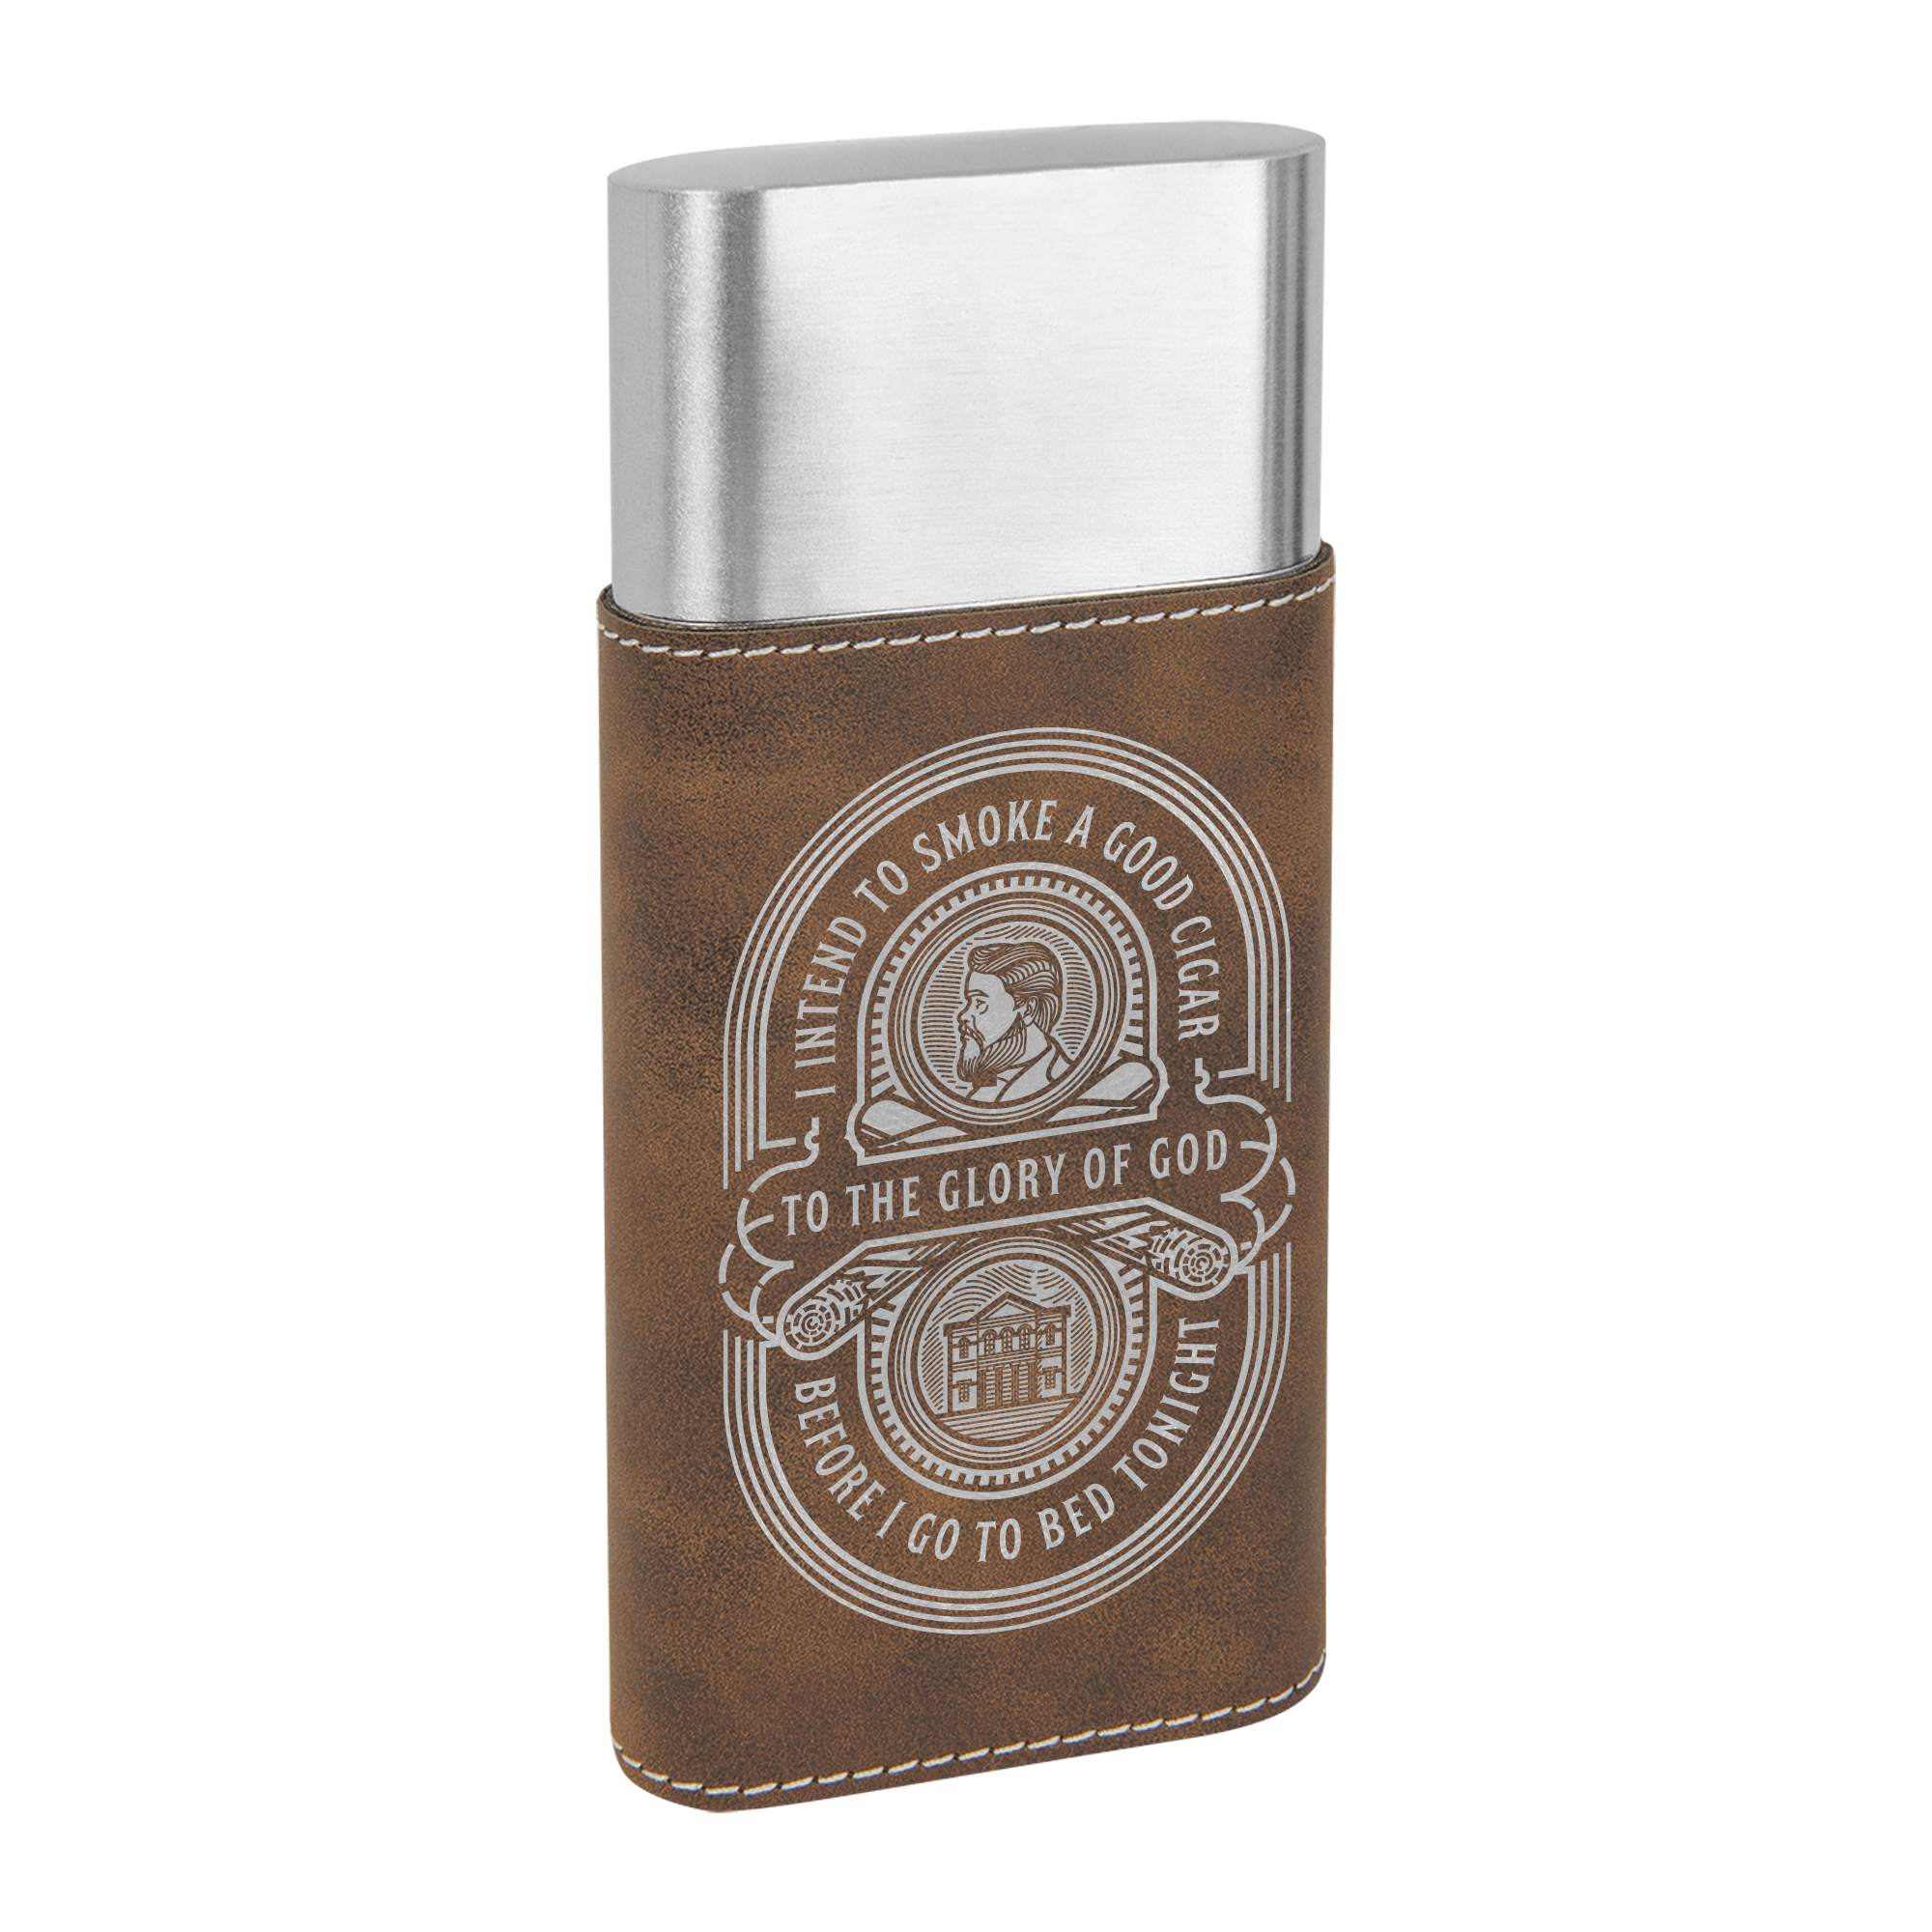 Charles Spurgeon Cigar Quote Cigar Holder